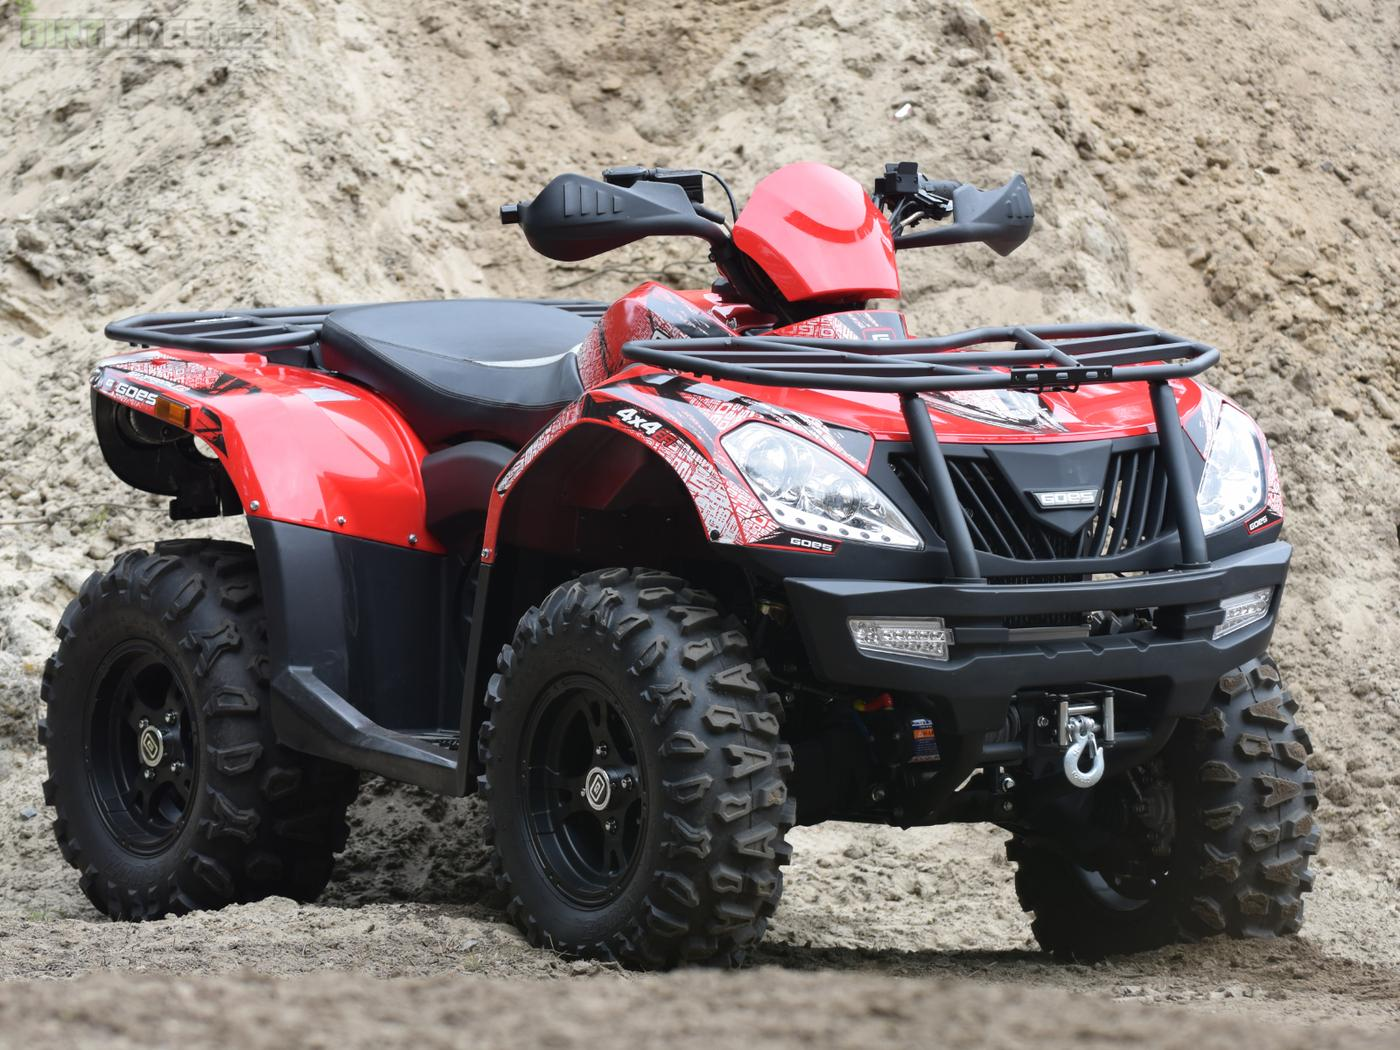 Goes Iron LTD 450i 4x4 EURO4